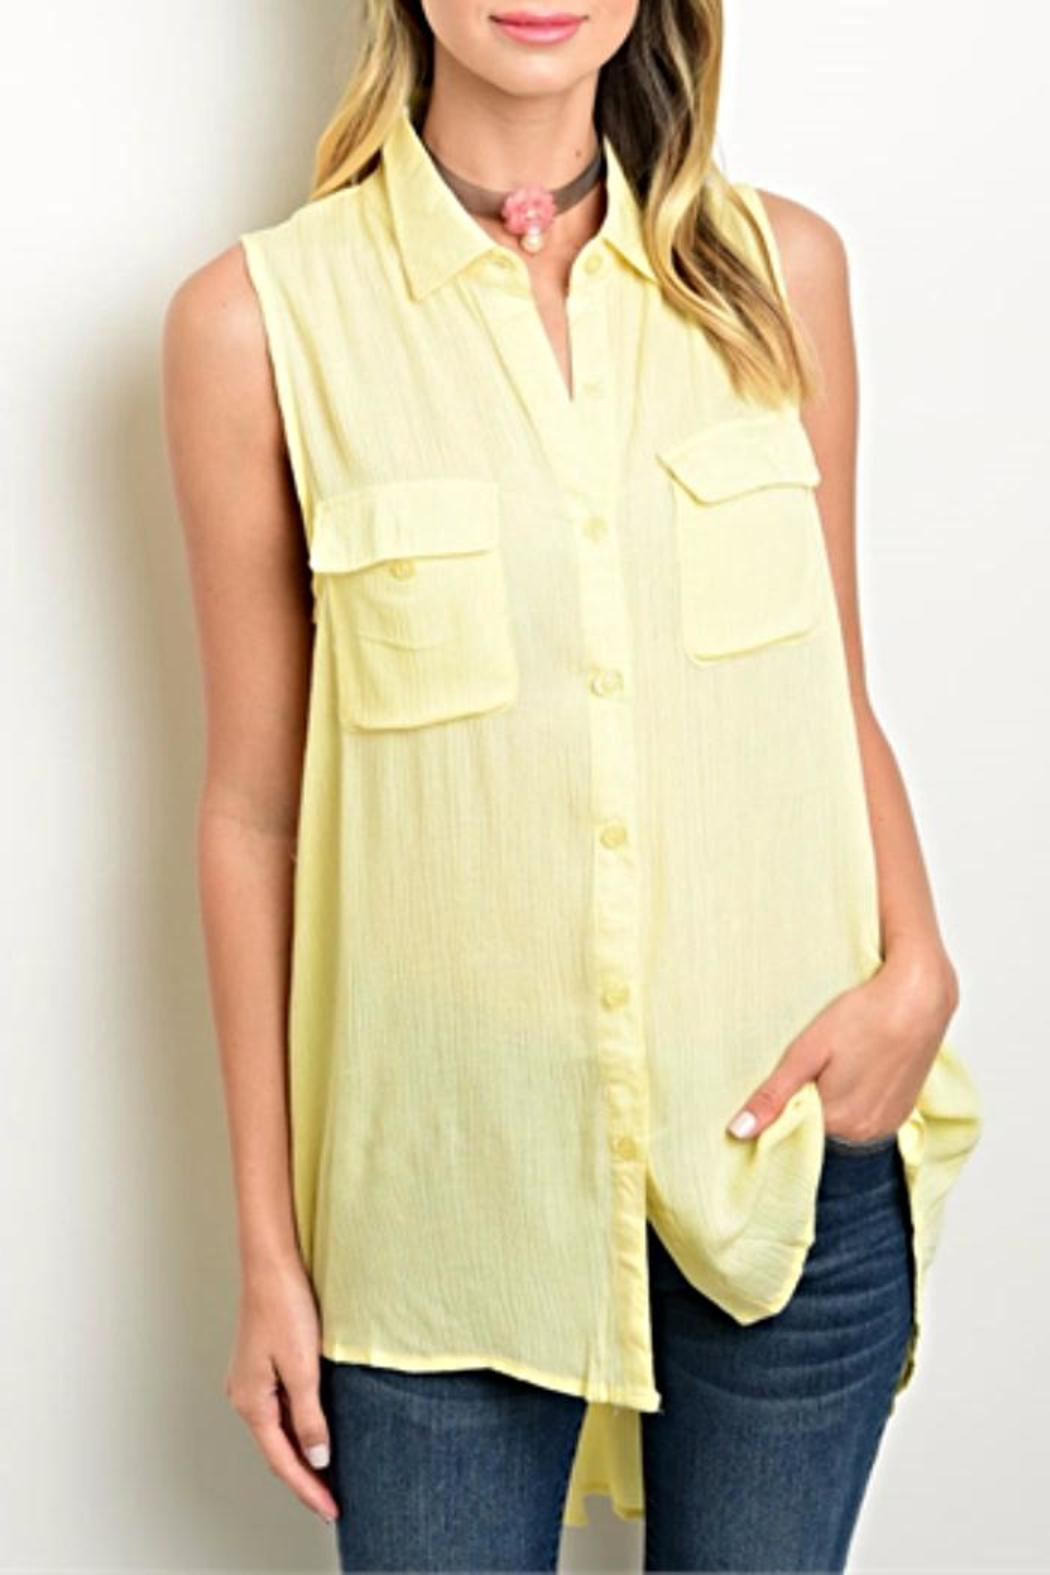 6e7d5a0af58 Available Yellow Tunic Top from Kansas by twill tradE — Shoptiques